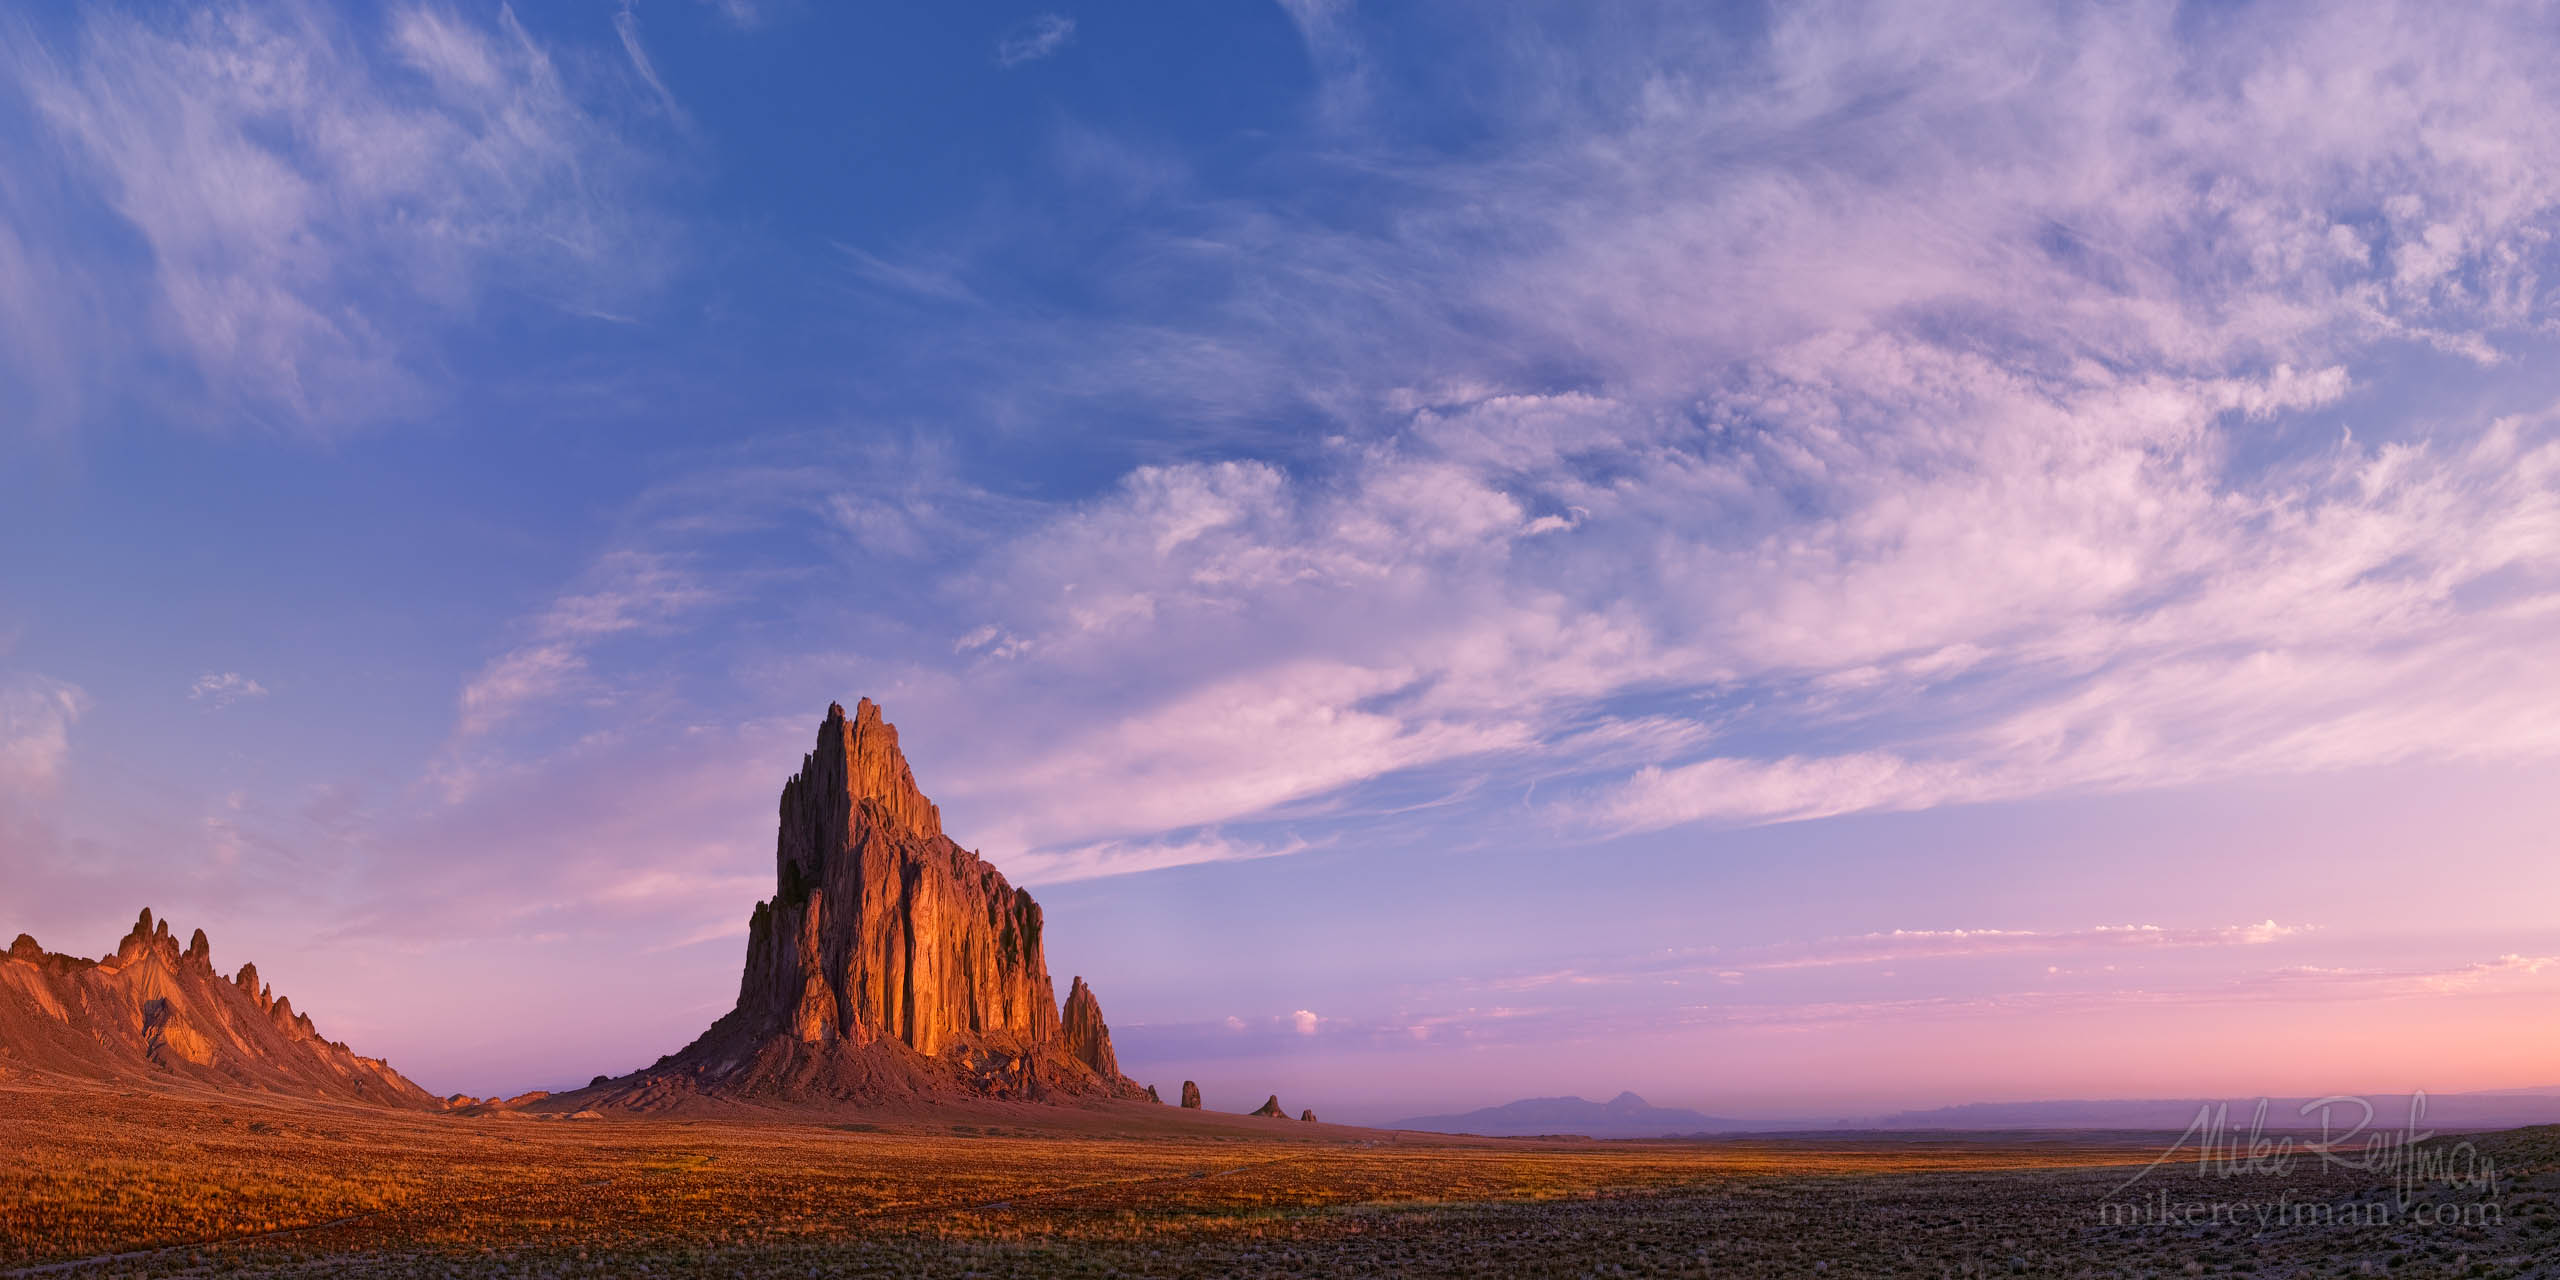 The Chronicles of Amber (shortest – 50 words)Shiprock (Tse Bi Dahi  or Rock with Wings) - the 1700-foot eroded volcanic plug that sacred to Navajo People. In that morning Navajo gods were benevolent, and on usually deserted sky floated clouds. P12-MRO3X7894-96-Pano - Selected panoramic images with 2:1 aspect ratio - Mike Reyfman Photography